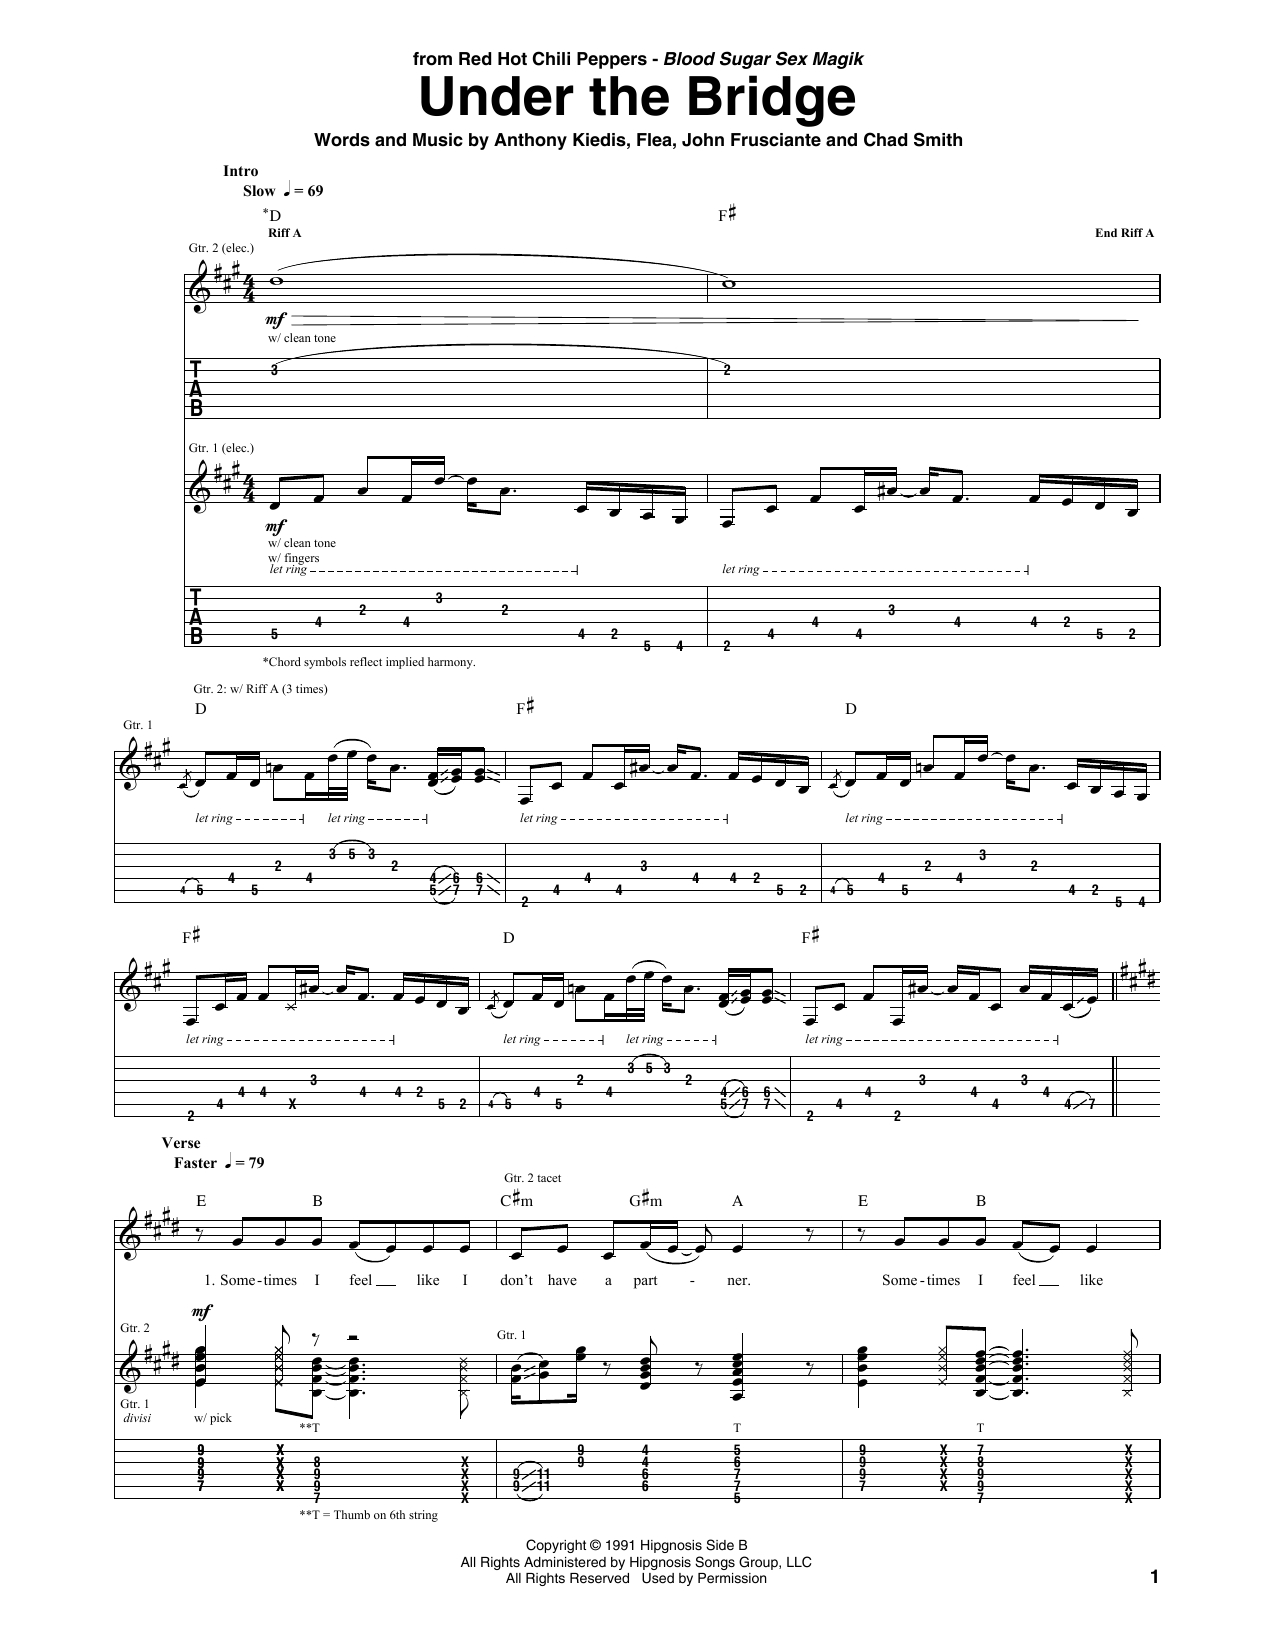 Under The Bridge Guitar Tab by Red Hot Chili Peppers (Guitar Tab u2013 68044)